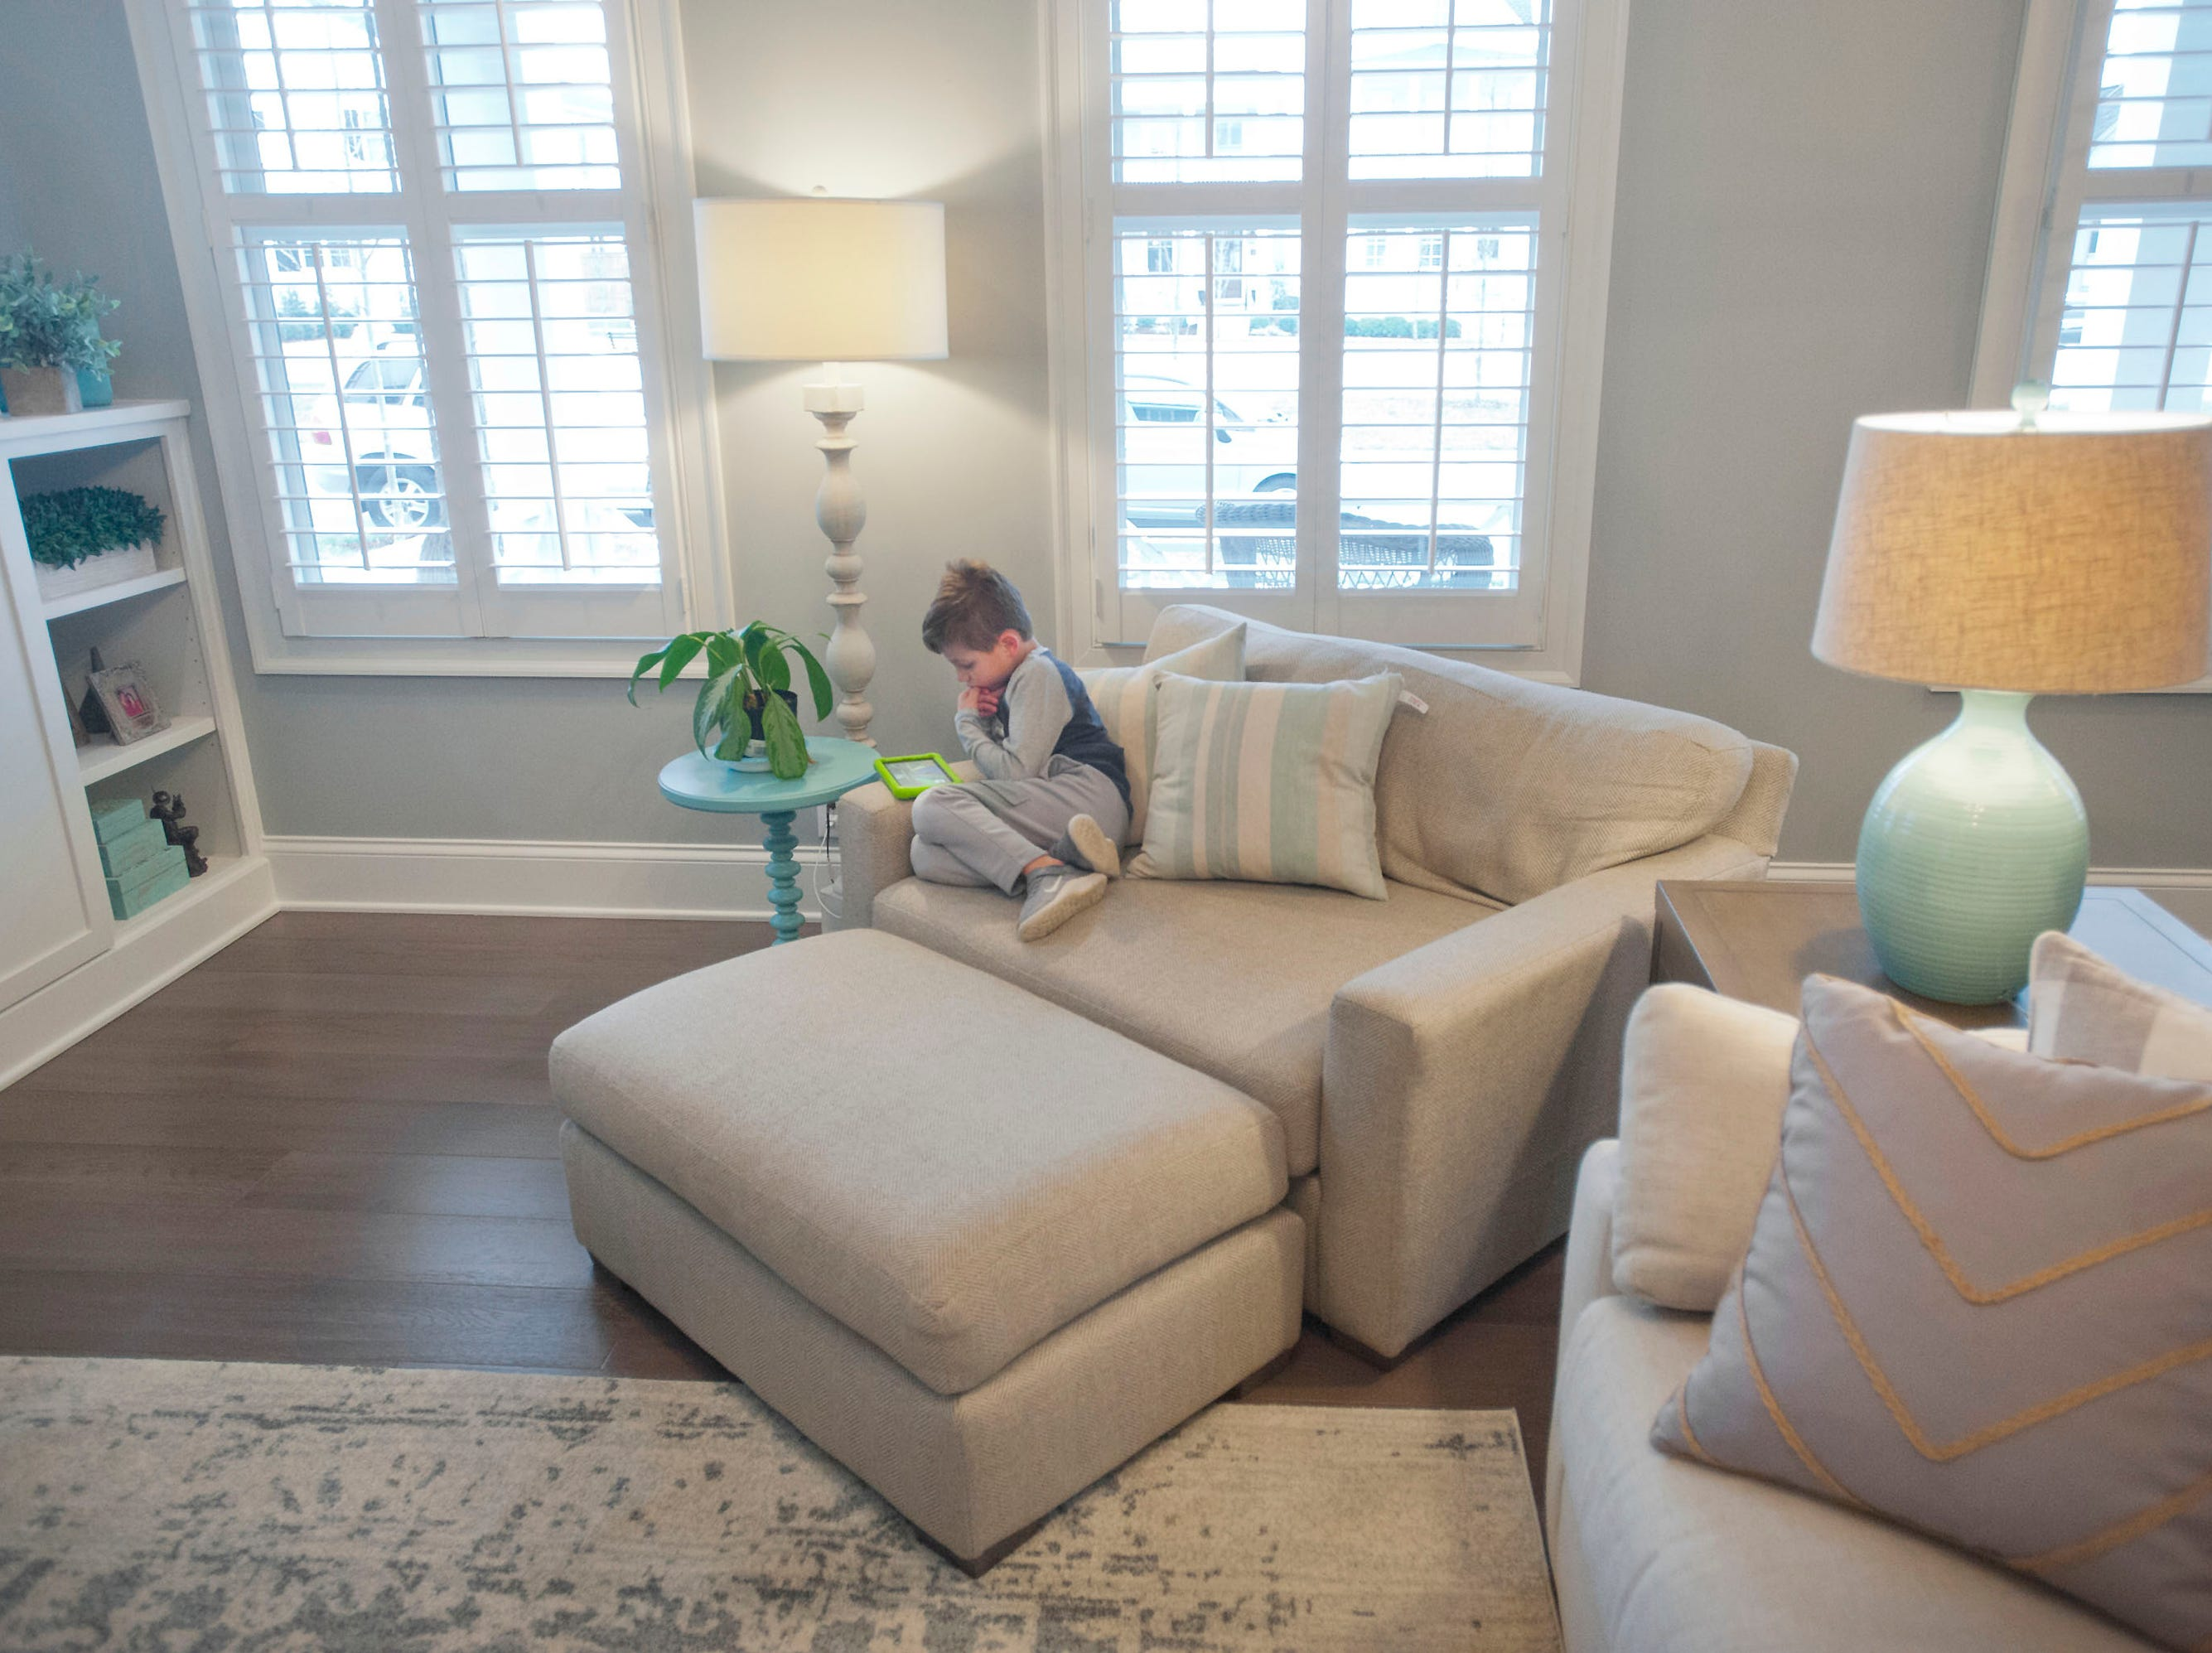 Ellis Hannah, age 5, plays on a game on his tablet in the living room.01 March 2019